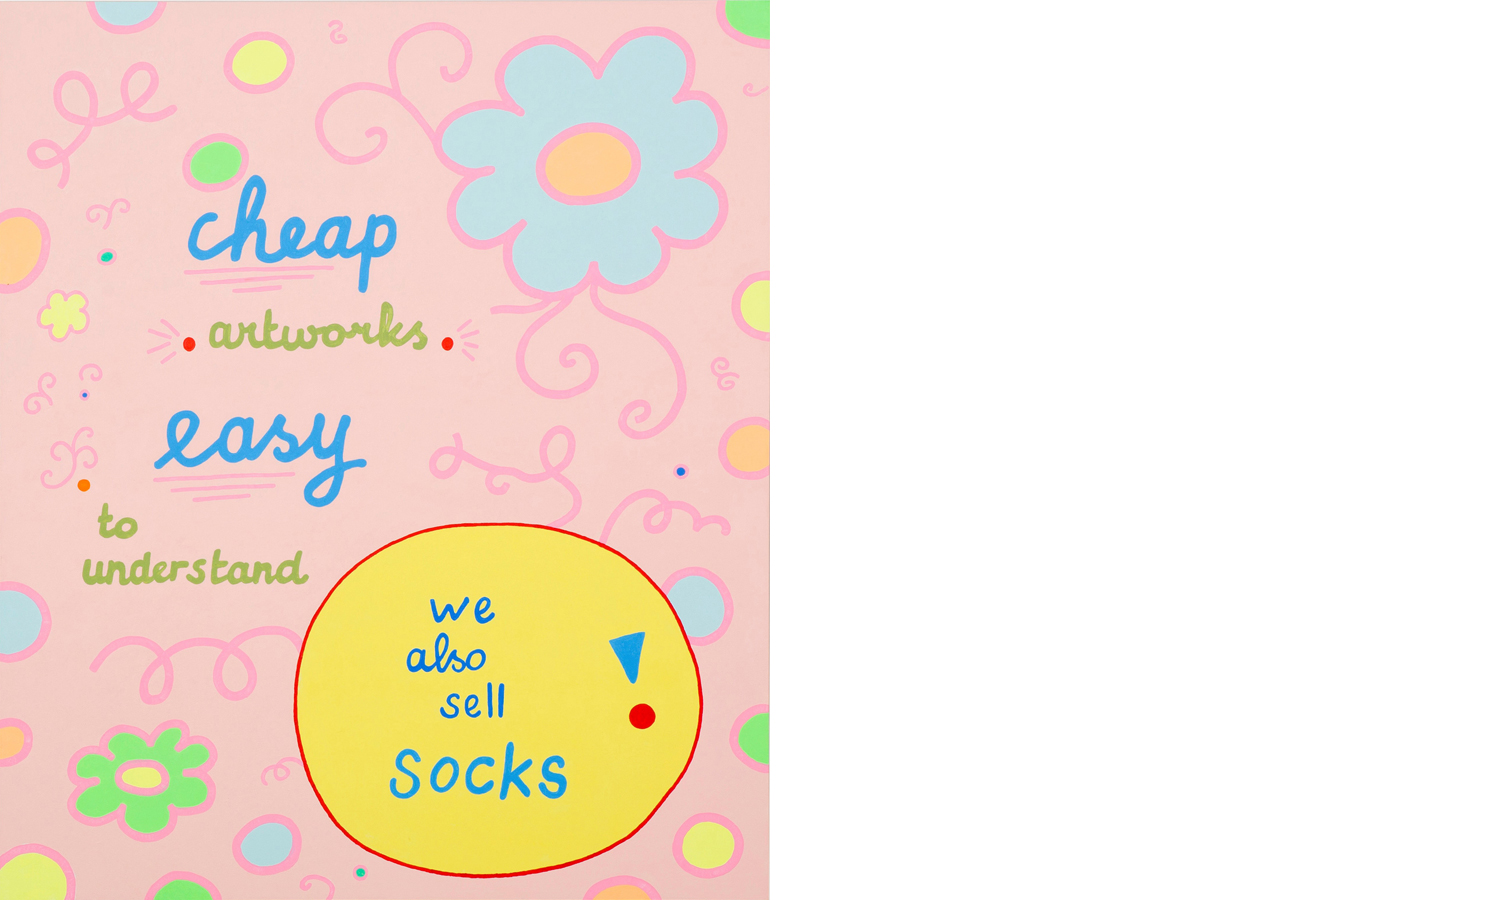 Lily van der stokker - cheap artworks easy to understand we also sell socks